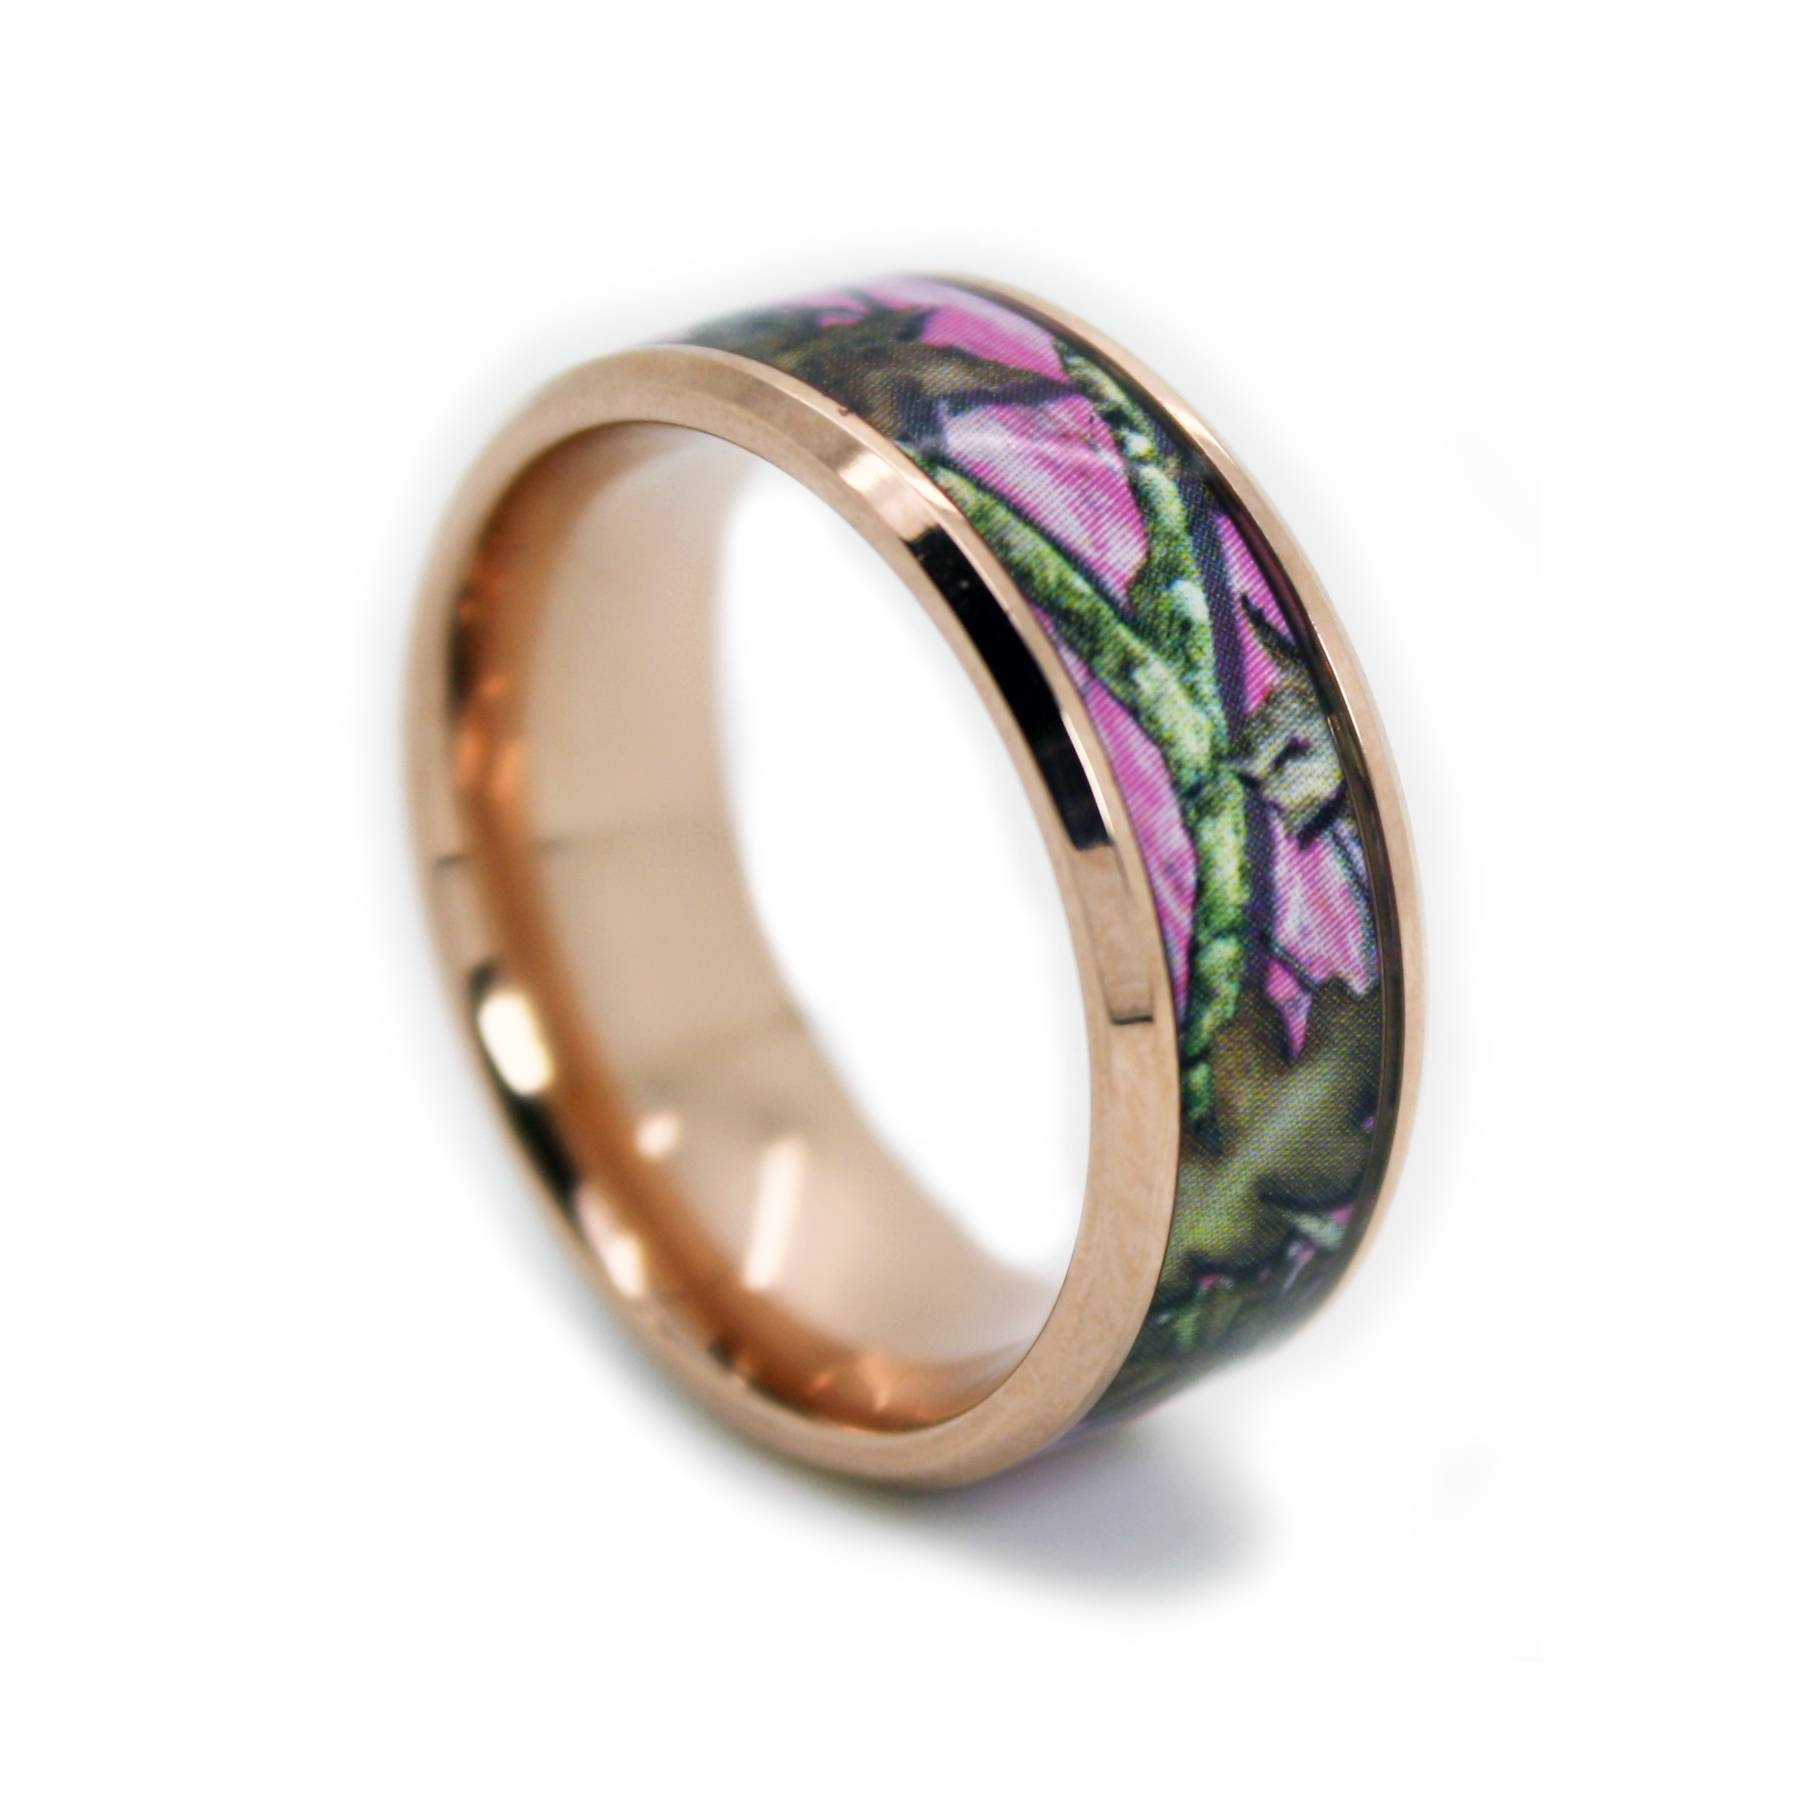 Camo Bands, Camouflage Wedding Rings For Just $99!, Camo Band With Regard To Camo Wedding Bands For Her (View 3 of 15)